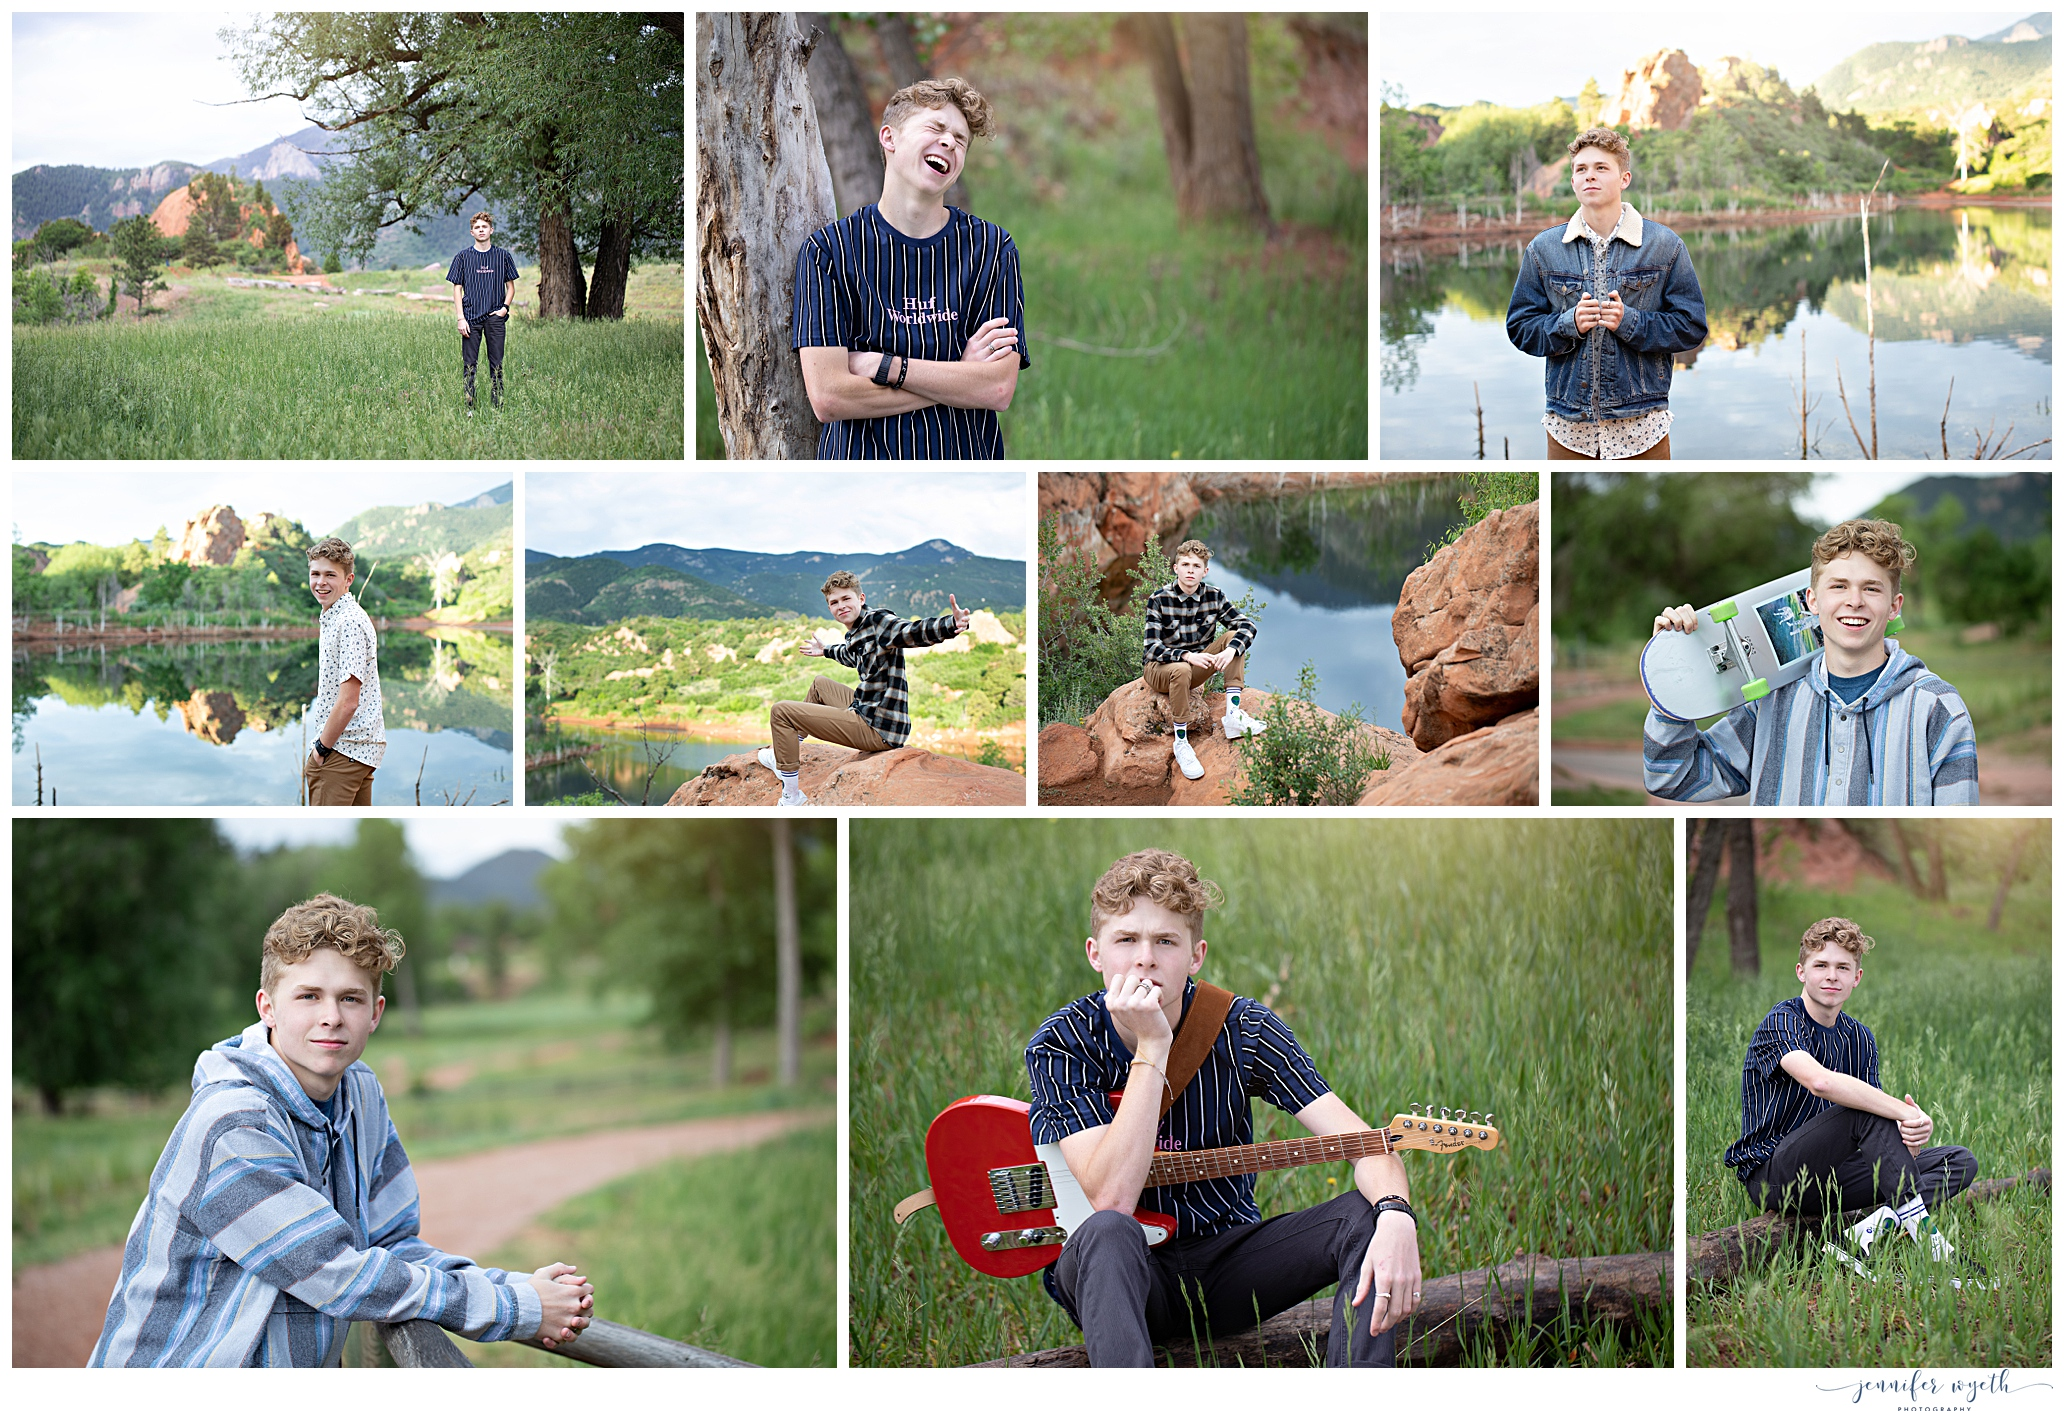 Jennifer-Wyeth-photography-senior-pictures-colorado-springs-photographer_0305.jpg